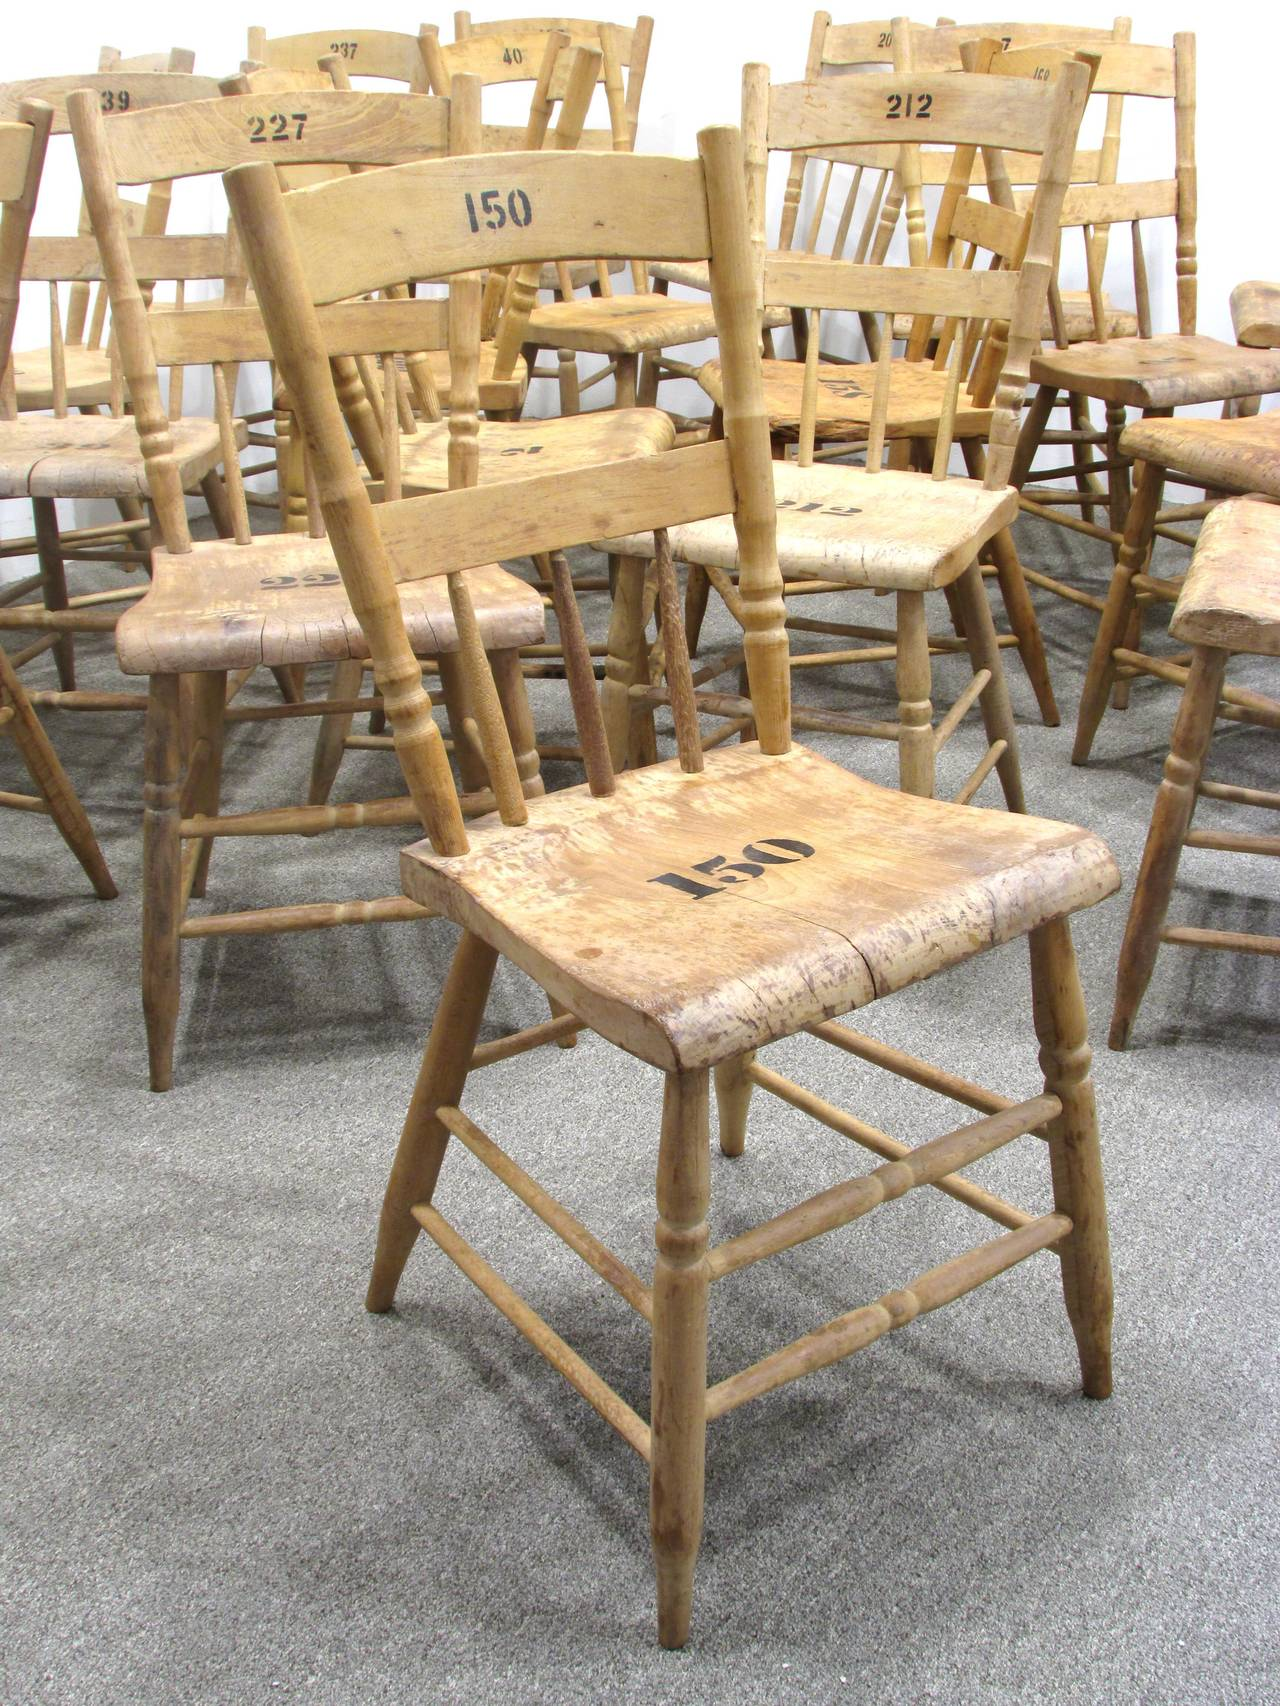 19th Century Grange Hall Chair 24 Available For Sale